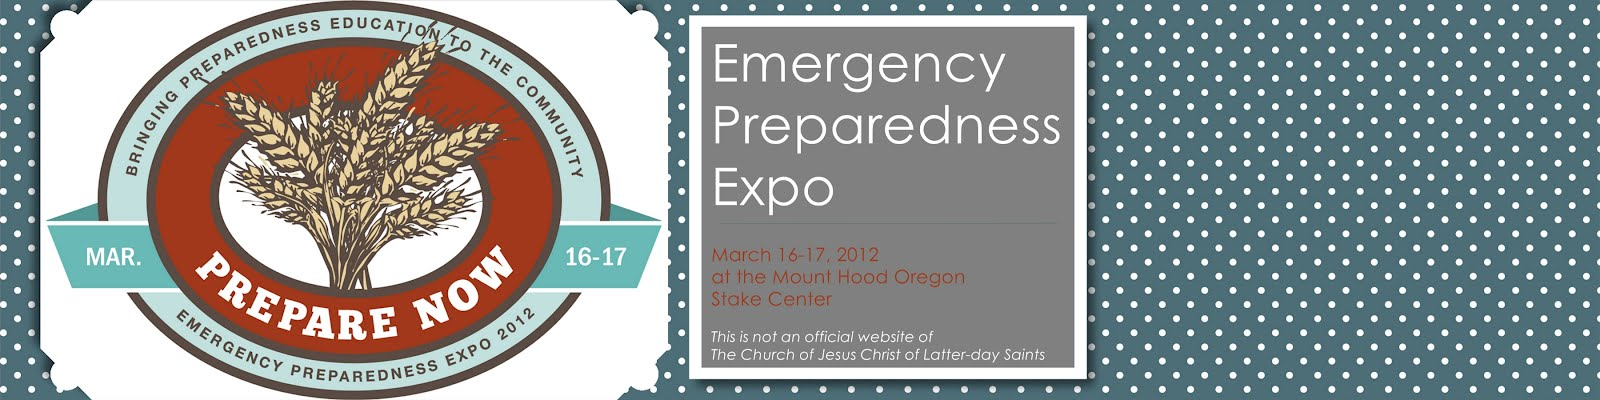 MOUNT HOOD EMERGENCY PREPAREDNESS EXPO